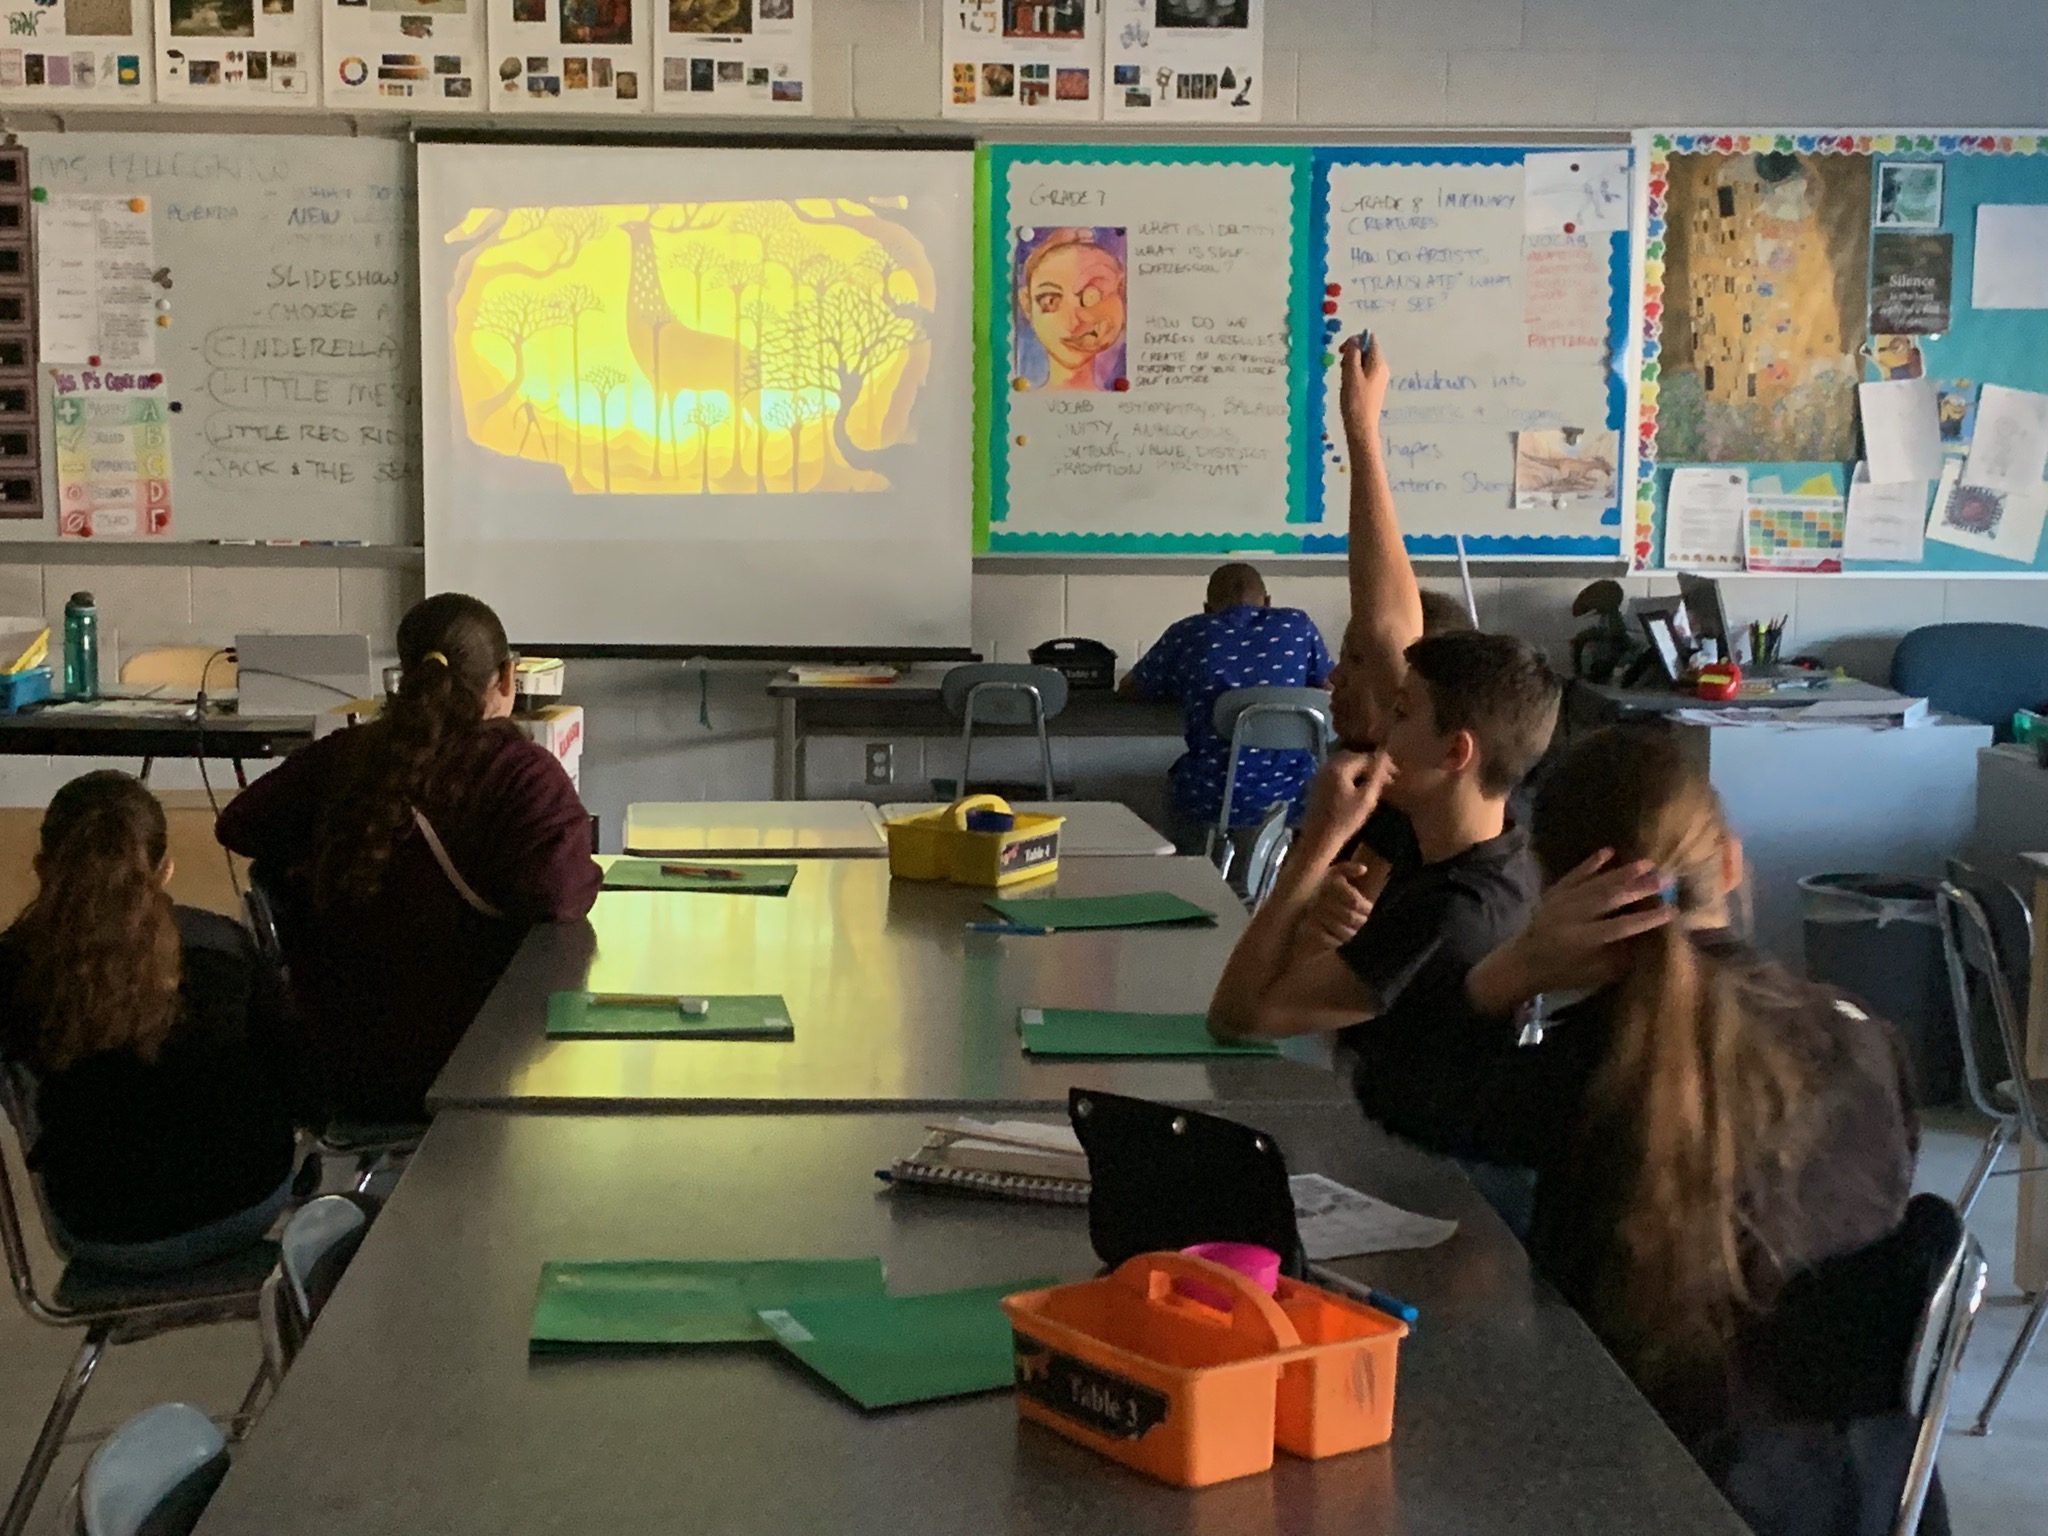 Students respond to prompts and questions during a lesson's introductory slideshow presentation.